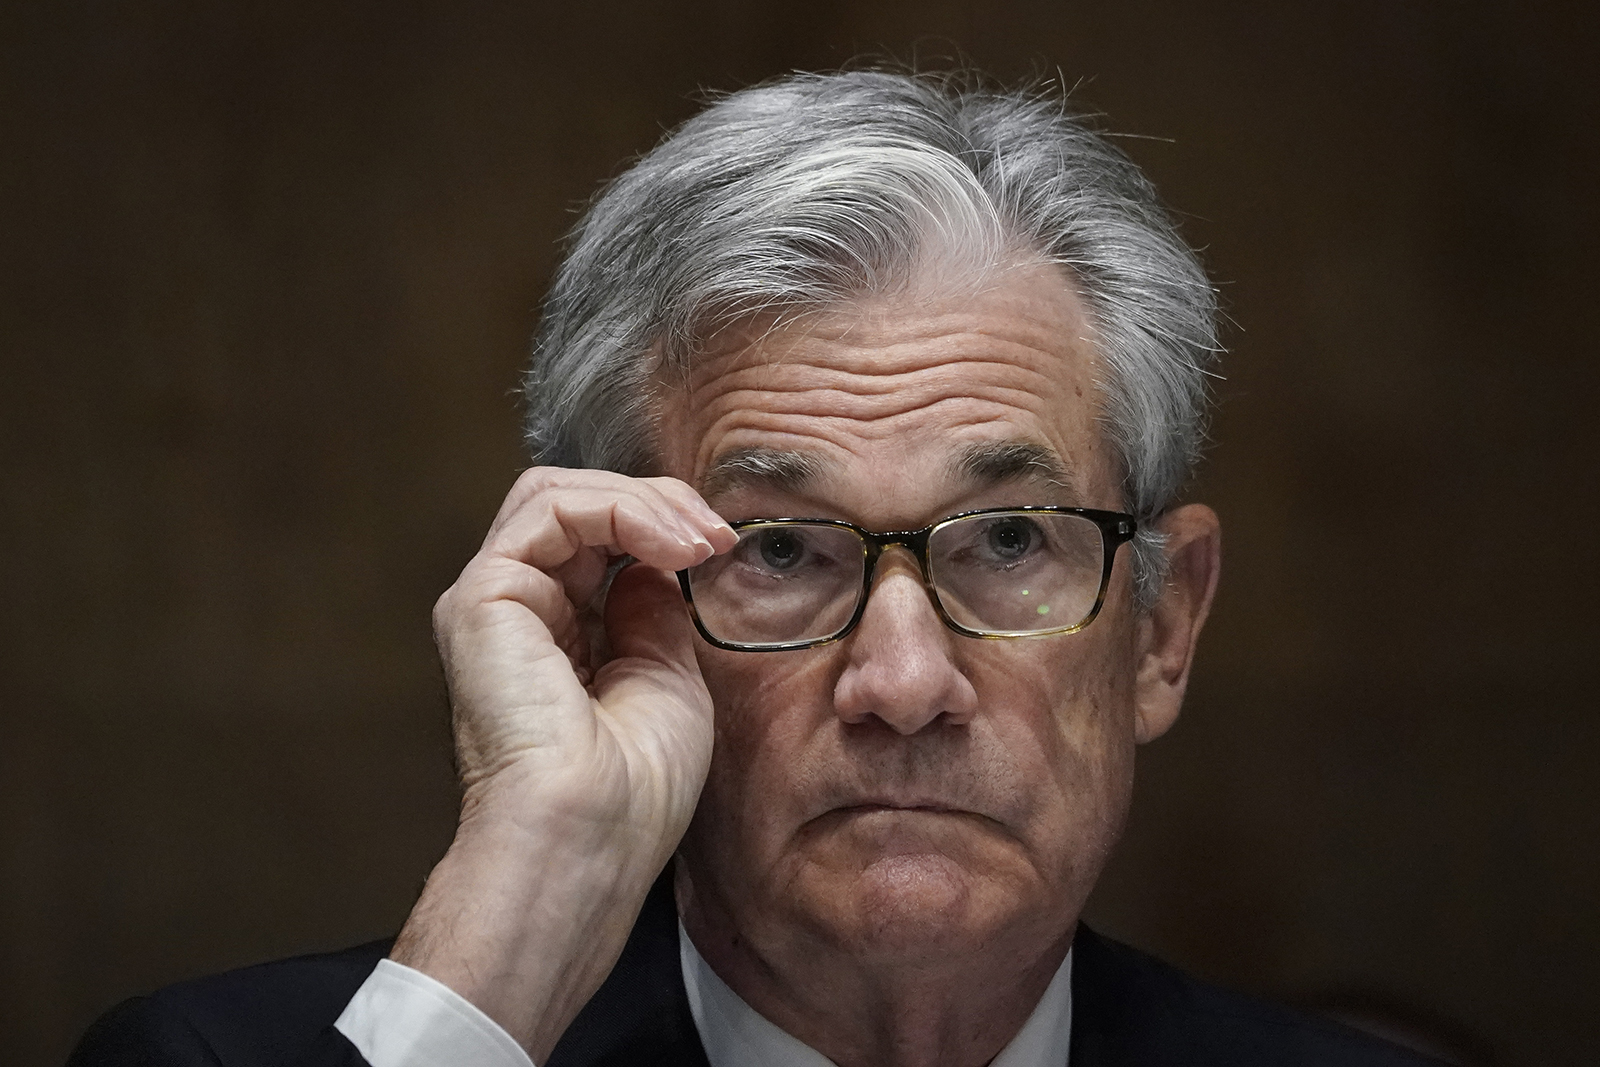 Fed chair calls the economic recovery 'extraordinarily uncertain'